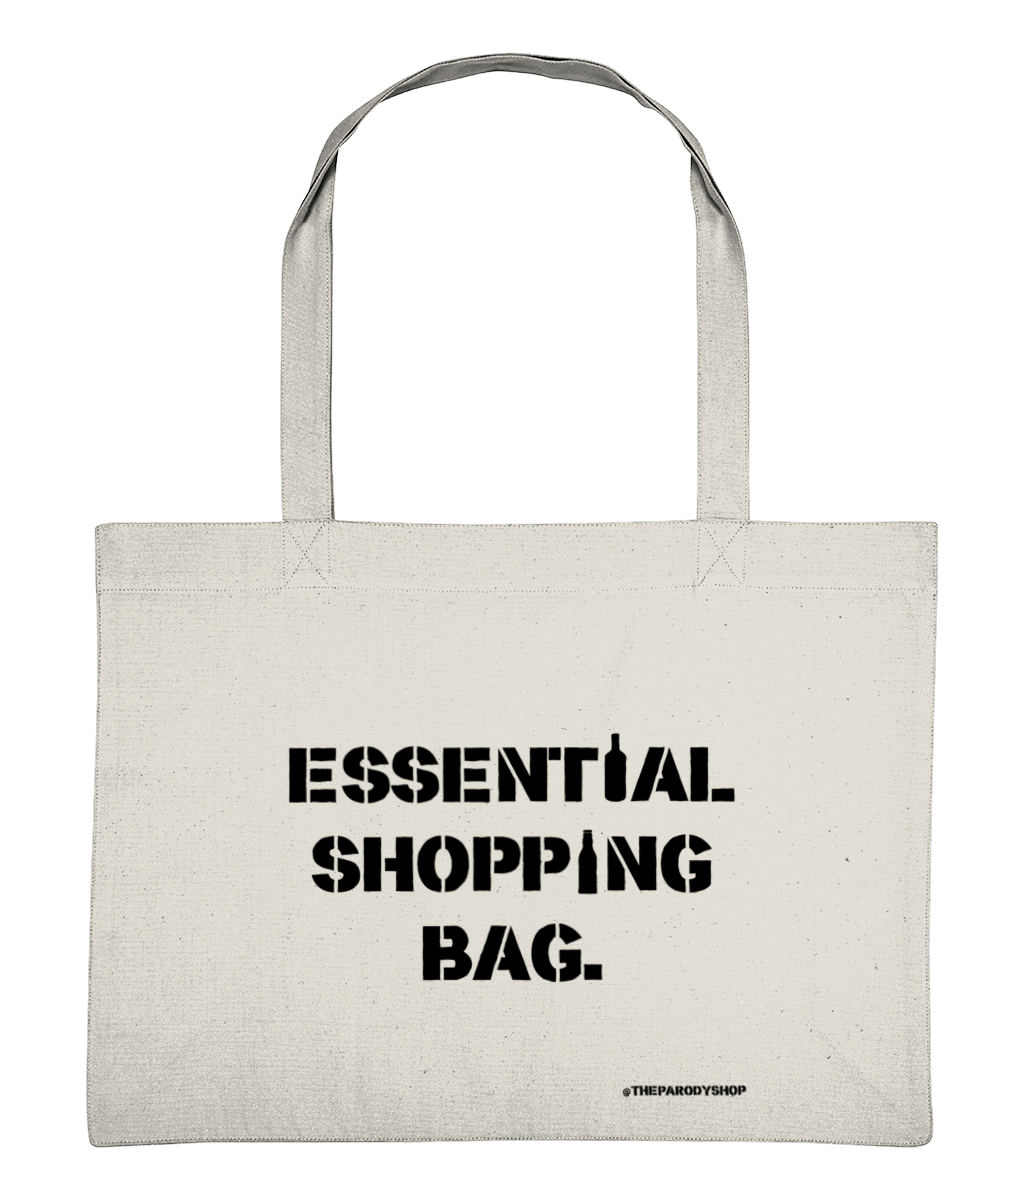 'ESSENTIAL' SHOPPING BAG